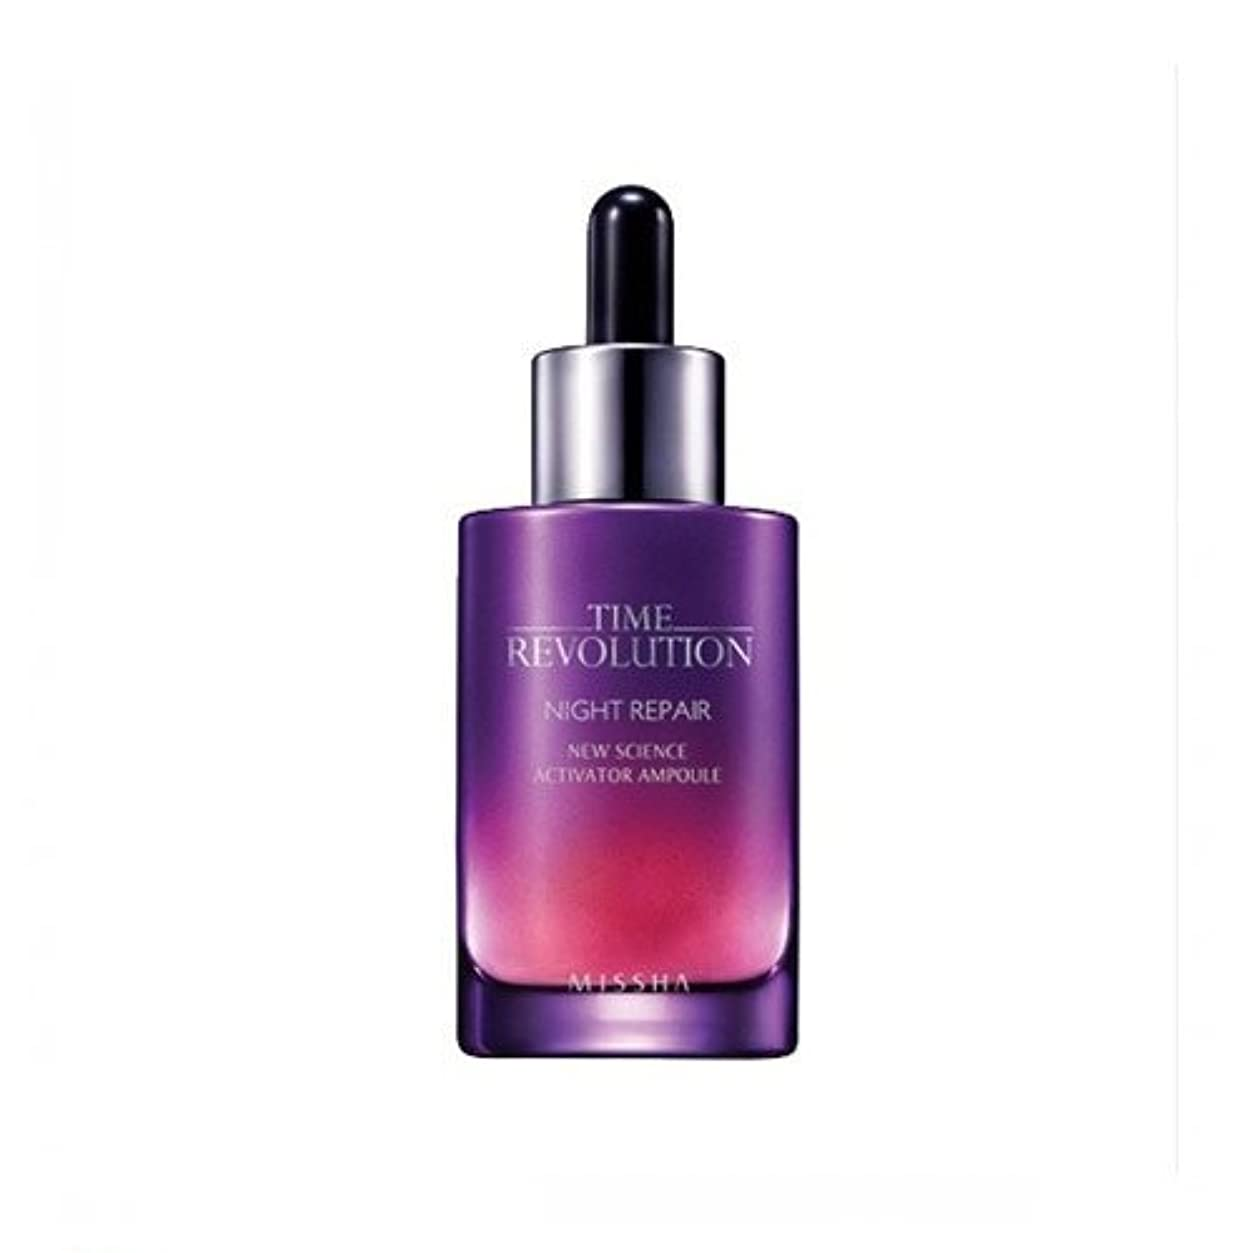 毒調査殺人者Missha Time Revolution Night Repair New Science Activator Ampoule 1.7oz MS04-Ampoule [並行輸入品]